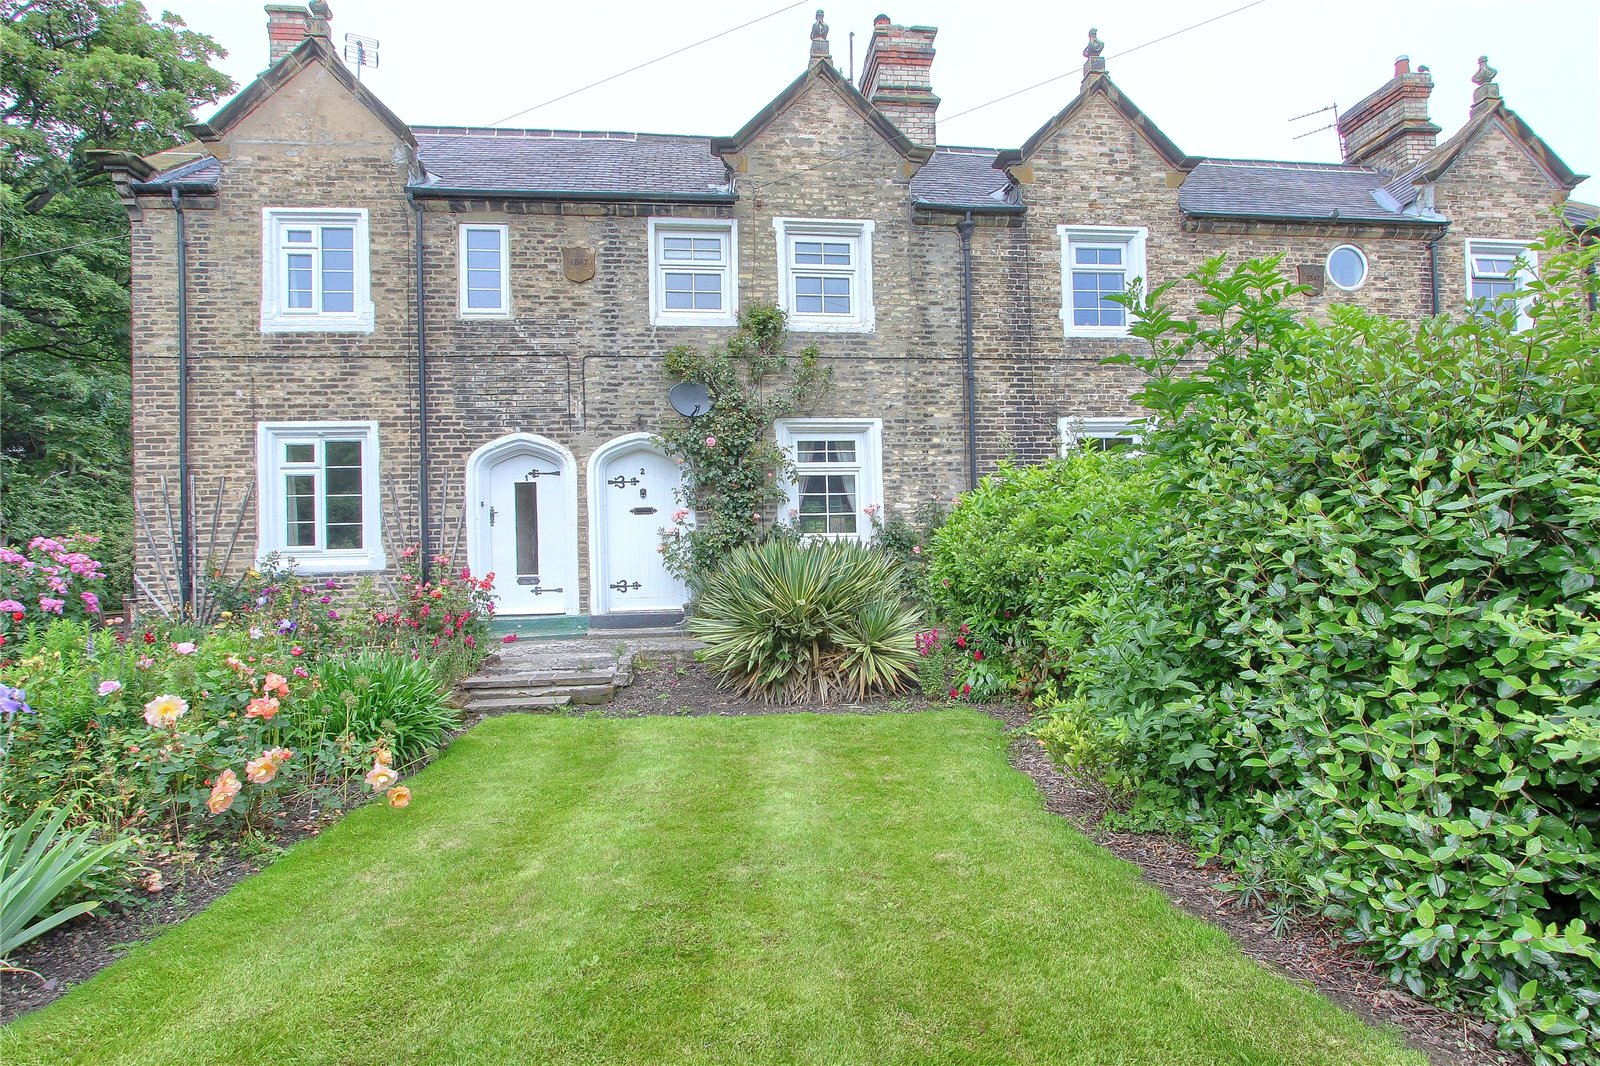 3 bed house for sale in The Cottages, Kirkleatham - Property Image 1